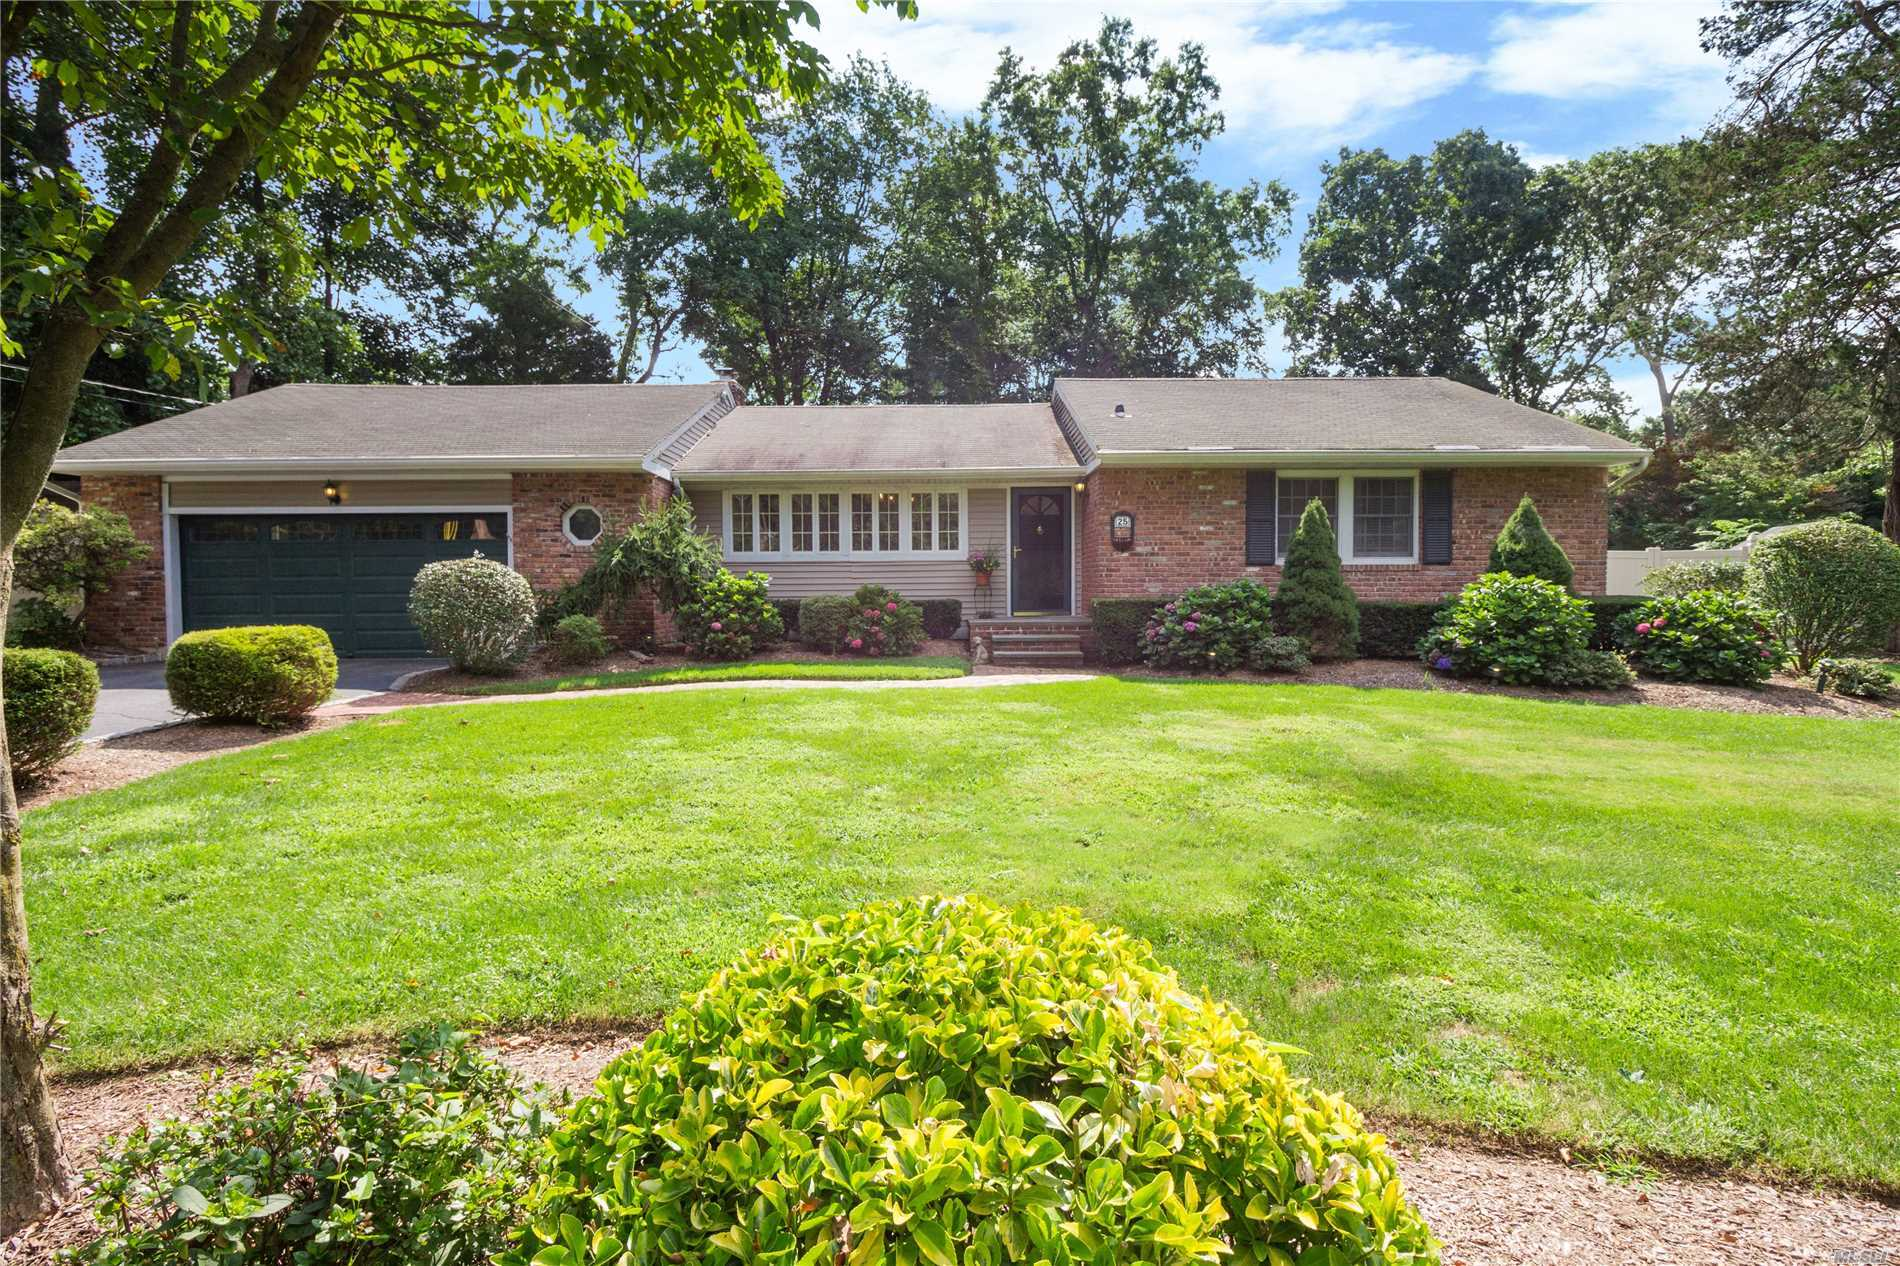 Easy Living In This 4 Bedroom, 2 Full Bath Brick Ranch. Granite/Stainless Kitchen, Soaring Ceilings And Walls Of Glass Overlooking Flat Manicured .56 Acre Fully Fenced Yard. Light Bright Family Room And Spacious 4 Bedrooms Make This House Ideal. Minutes To The Train, Huntington Village And Beaches. Flower Hill Elementary. Taxes W/ Star $13, 18.